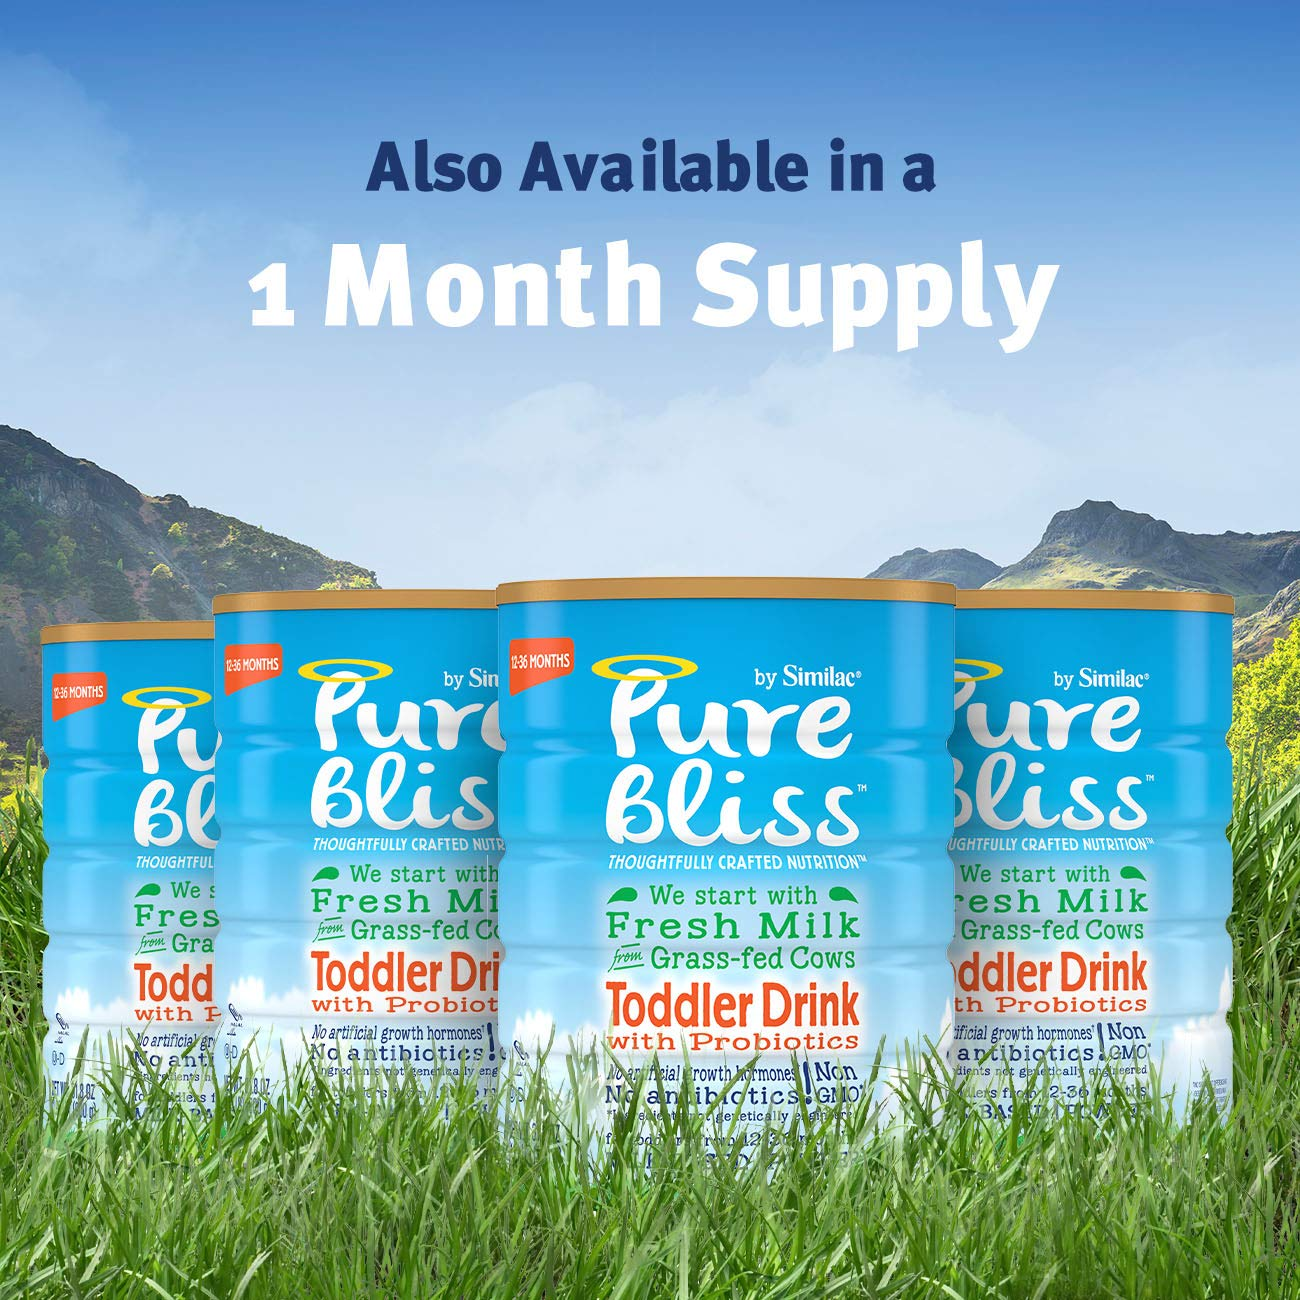 Pure Bliss by Similac Toddler Drink with Probiotics, Starts with Fresh Milk from Grass-Fed Cows, Non-GMO Toddler Formula, 31.8 ounces by Similac (Image #10)